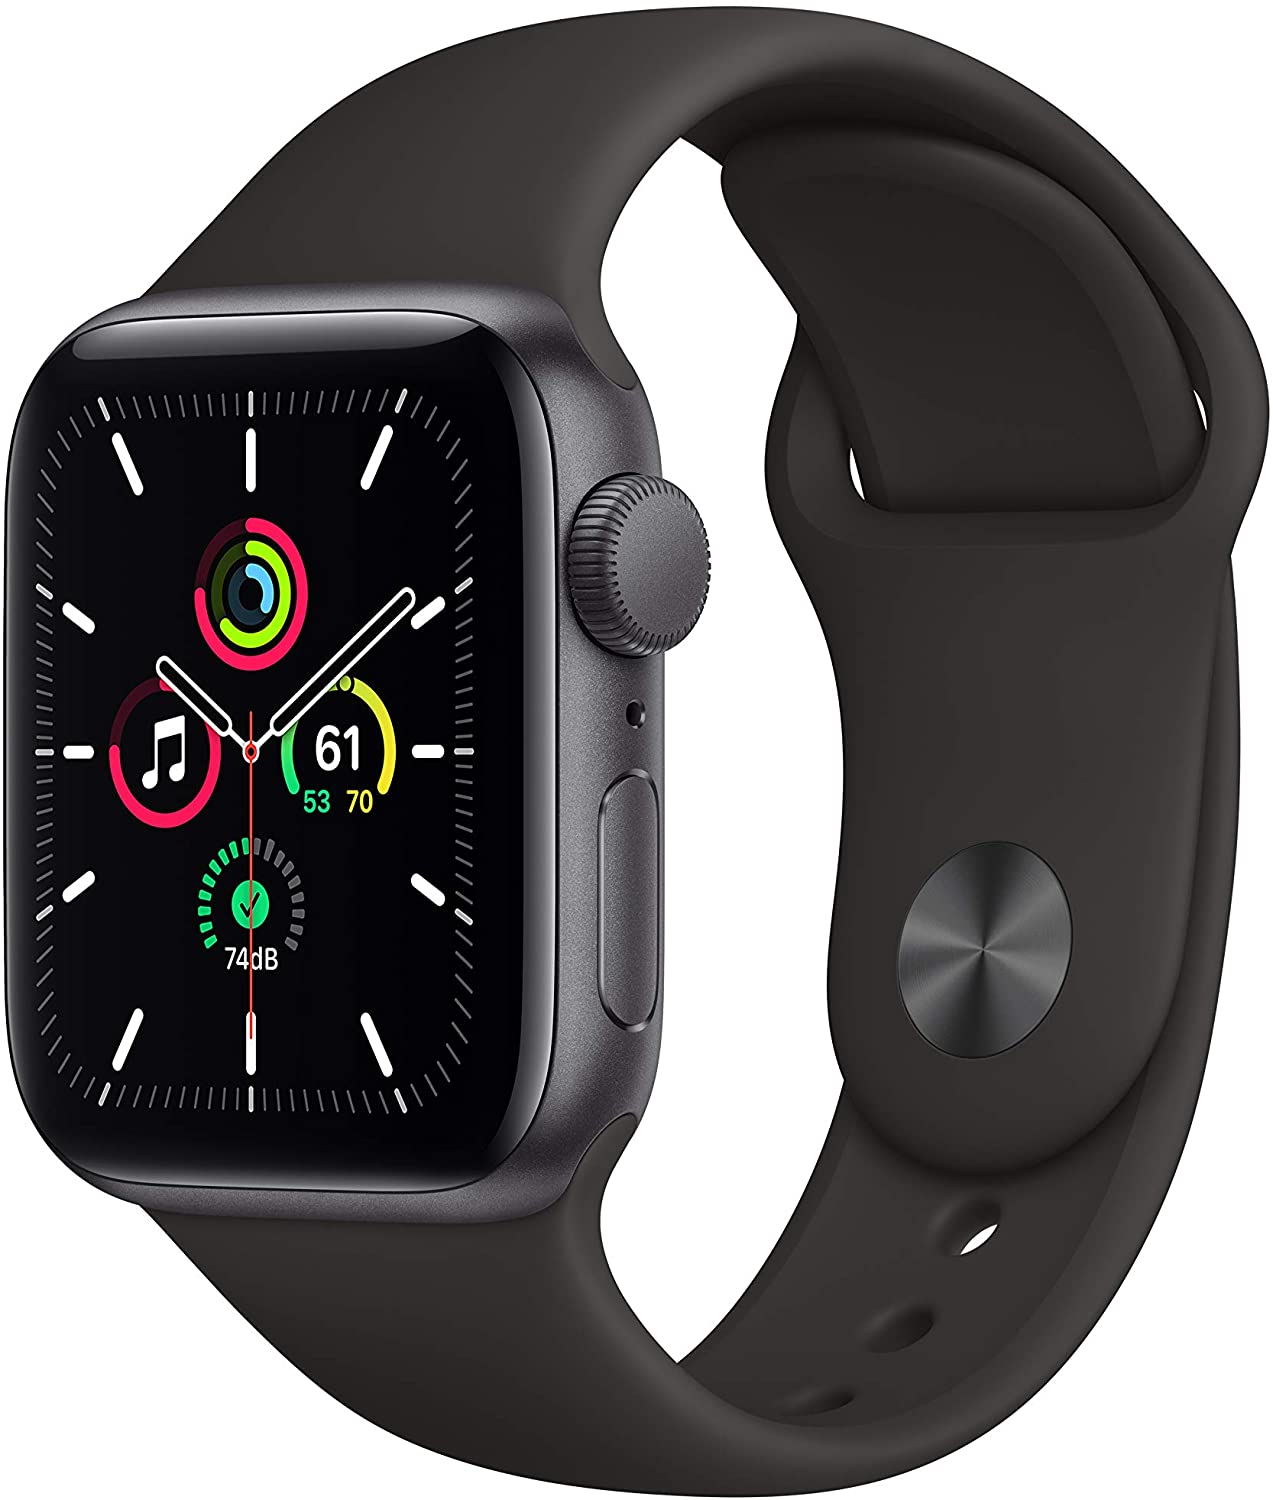 apple watch se gps watch isolated on white background